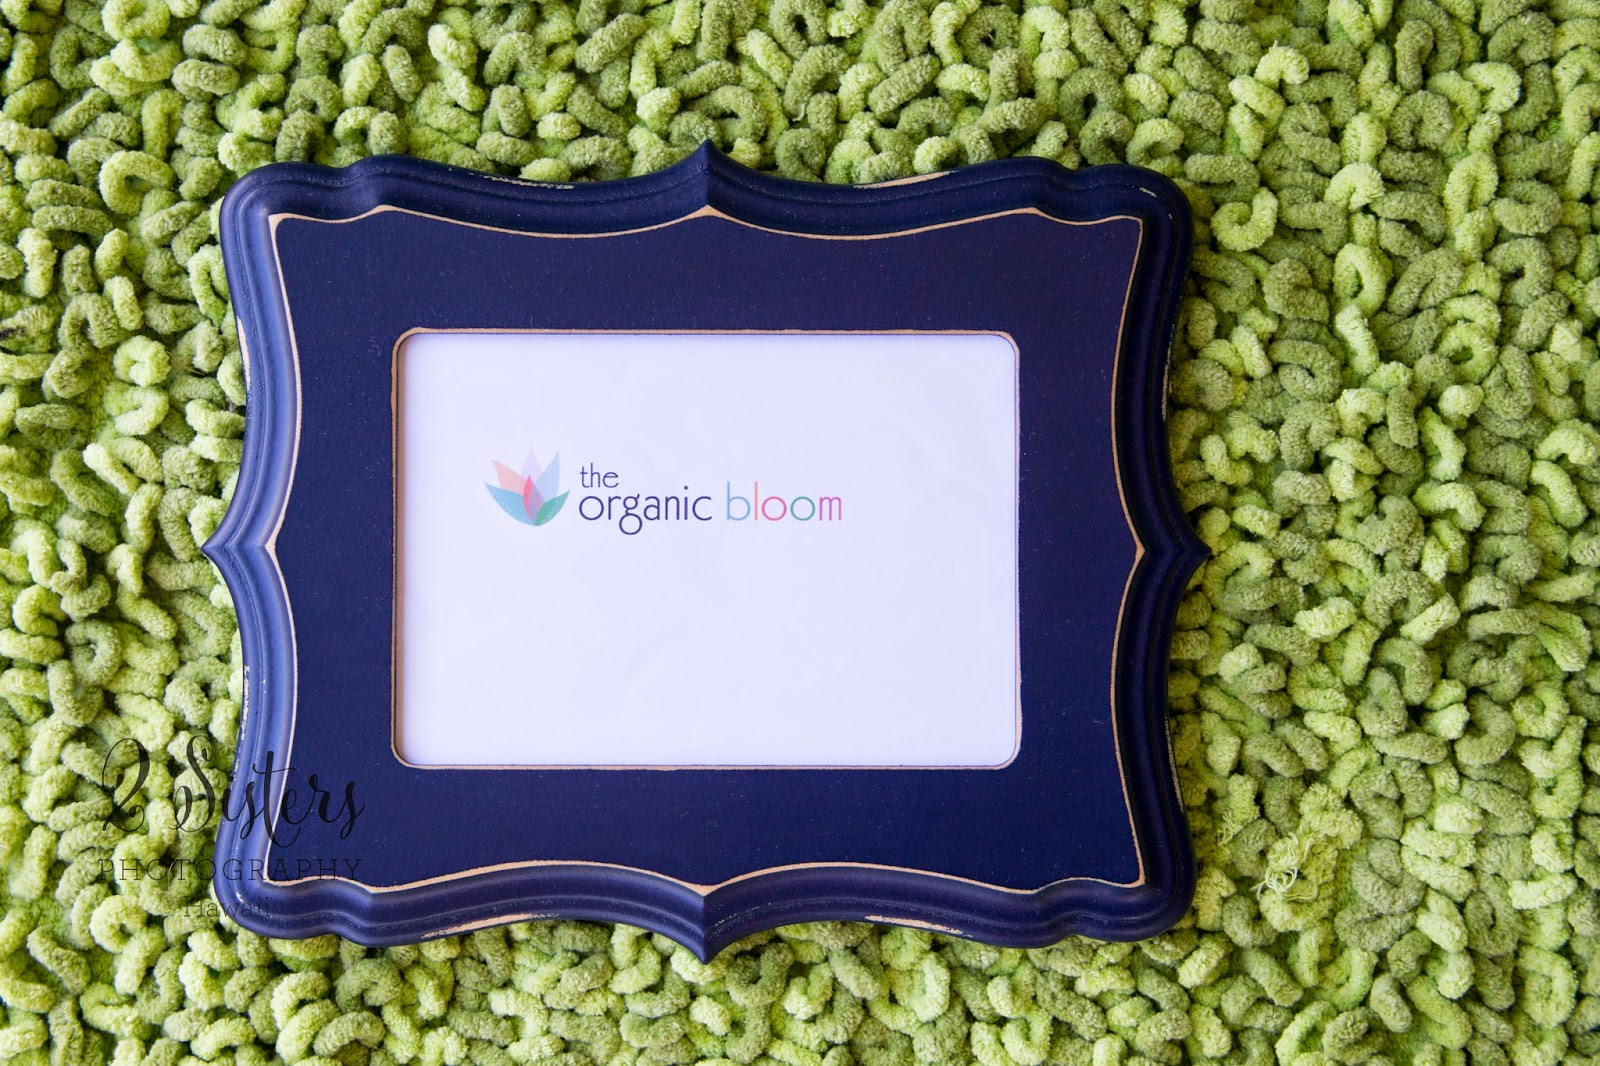 side note the organic bloom frames can only be purchased through a direct vendor if you are interested in learning more please email us